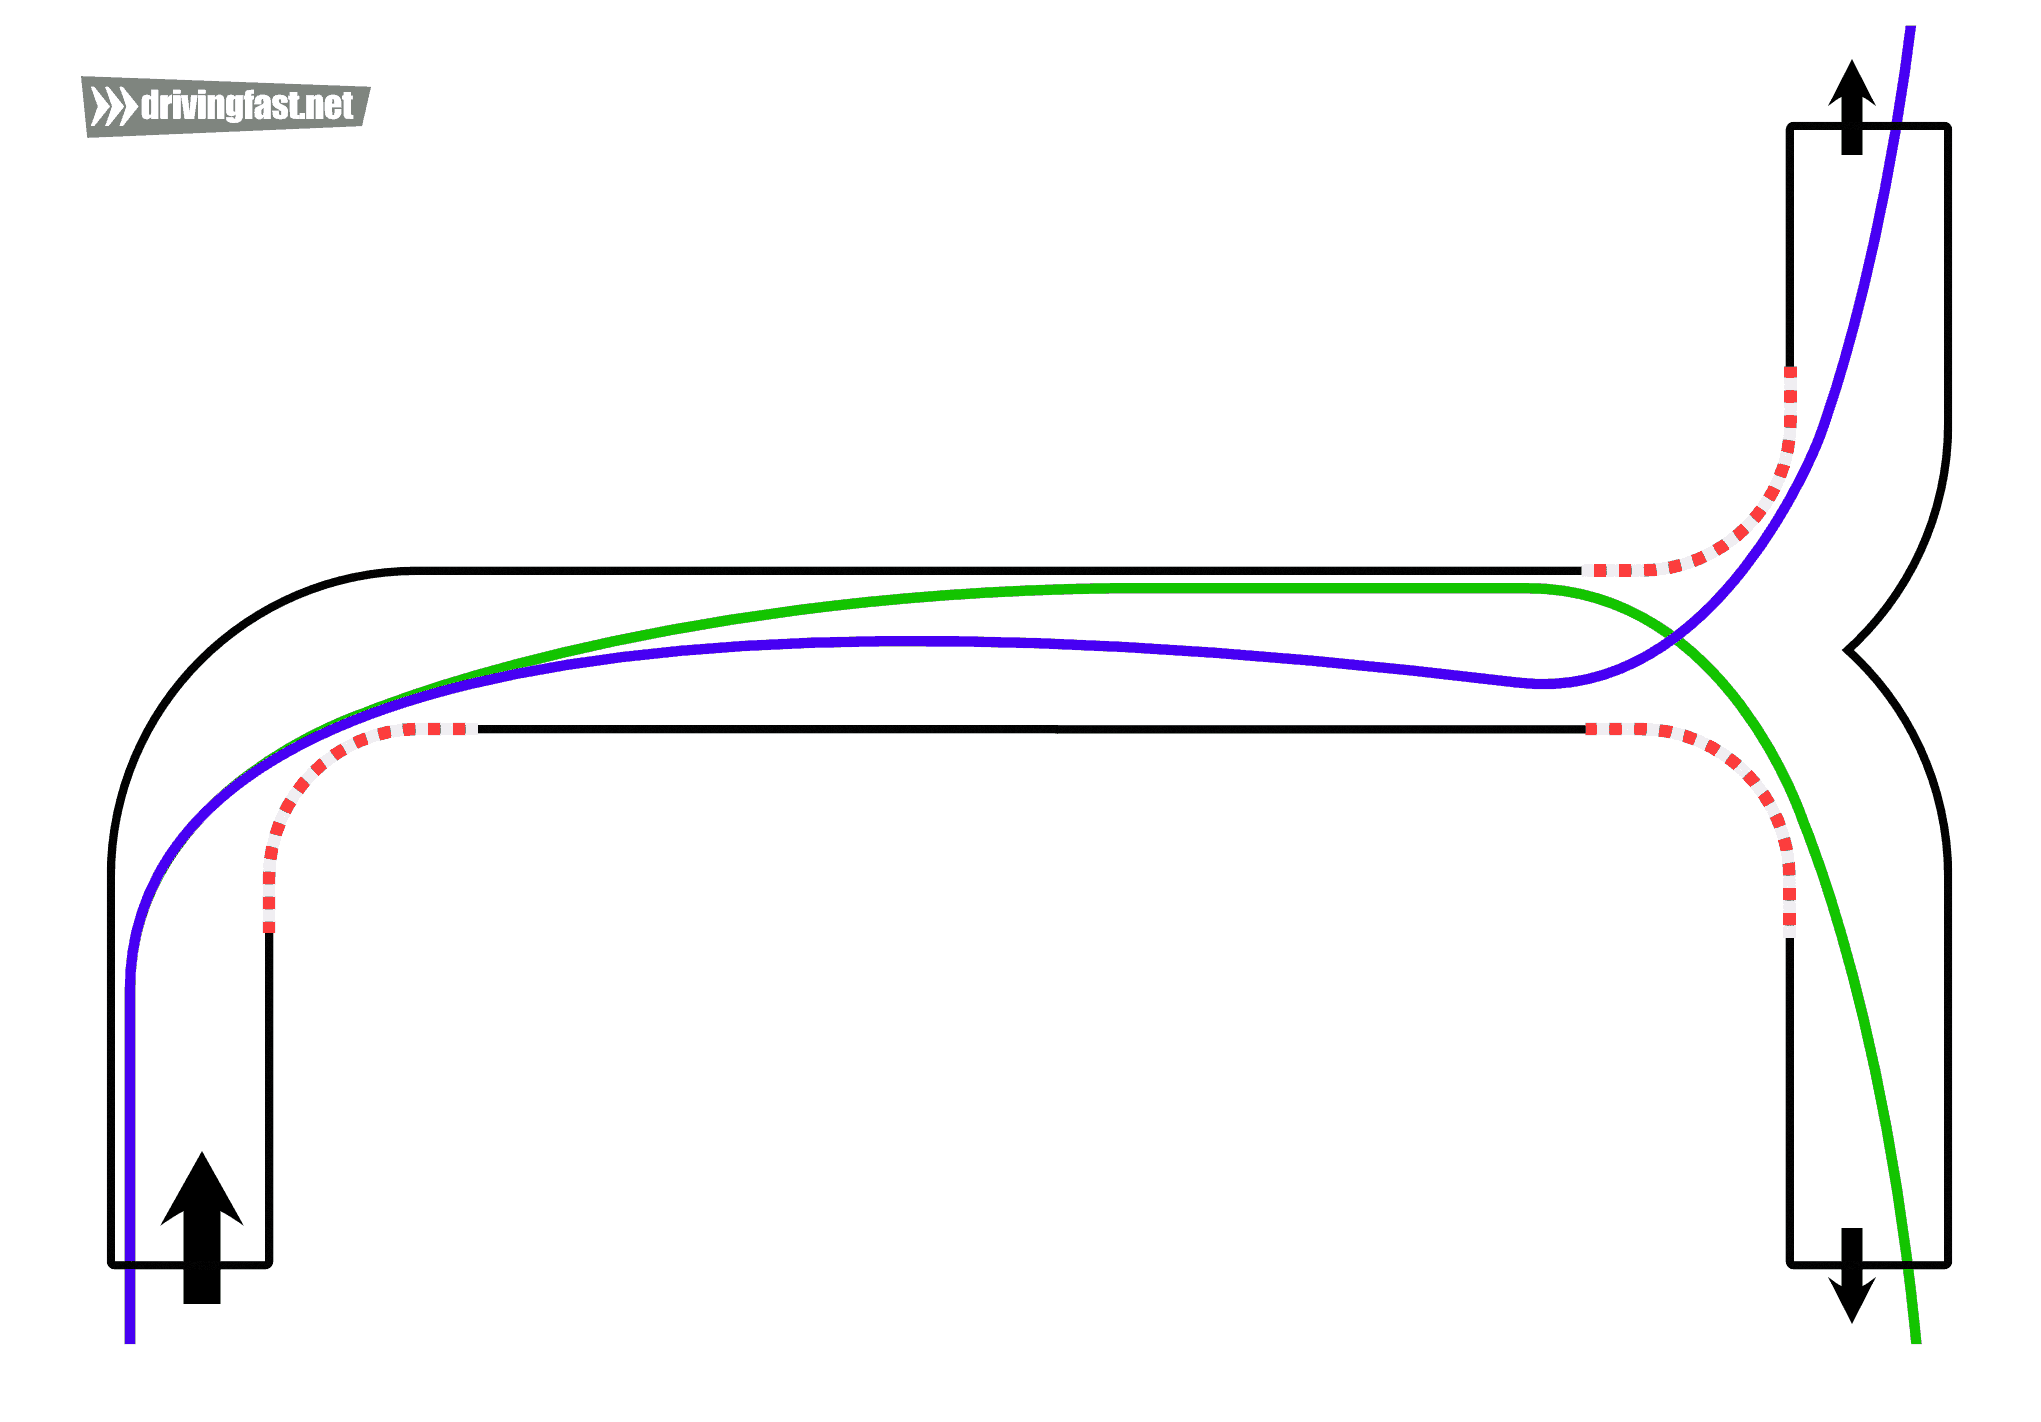 The racing line depends on the position of the next corner